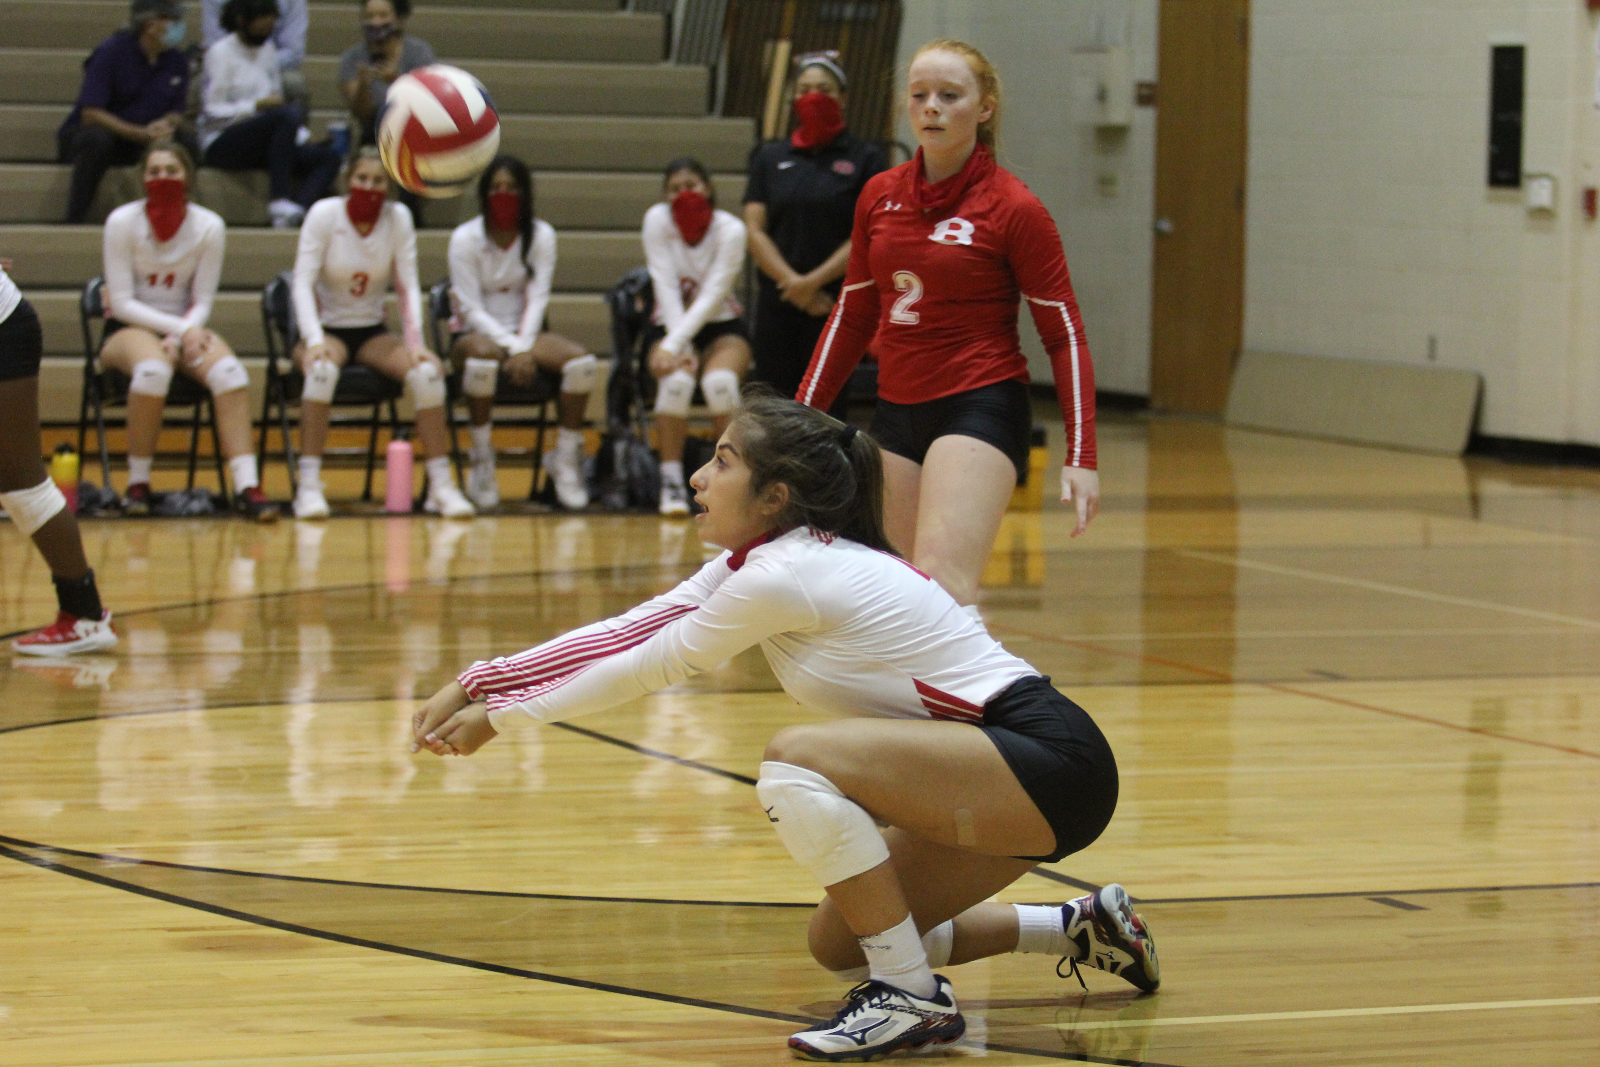 Back in winning ways: Tigers JV picks up sweep of Hutto